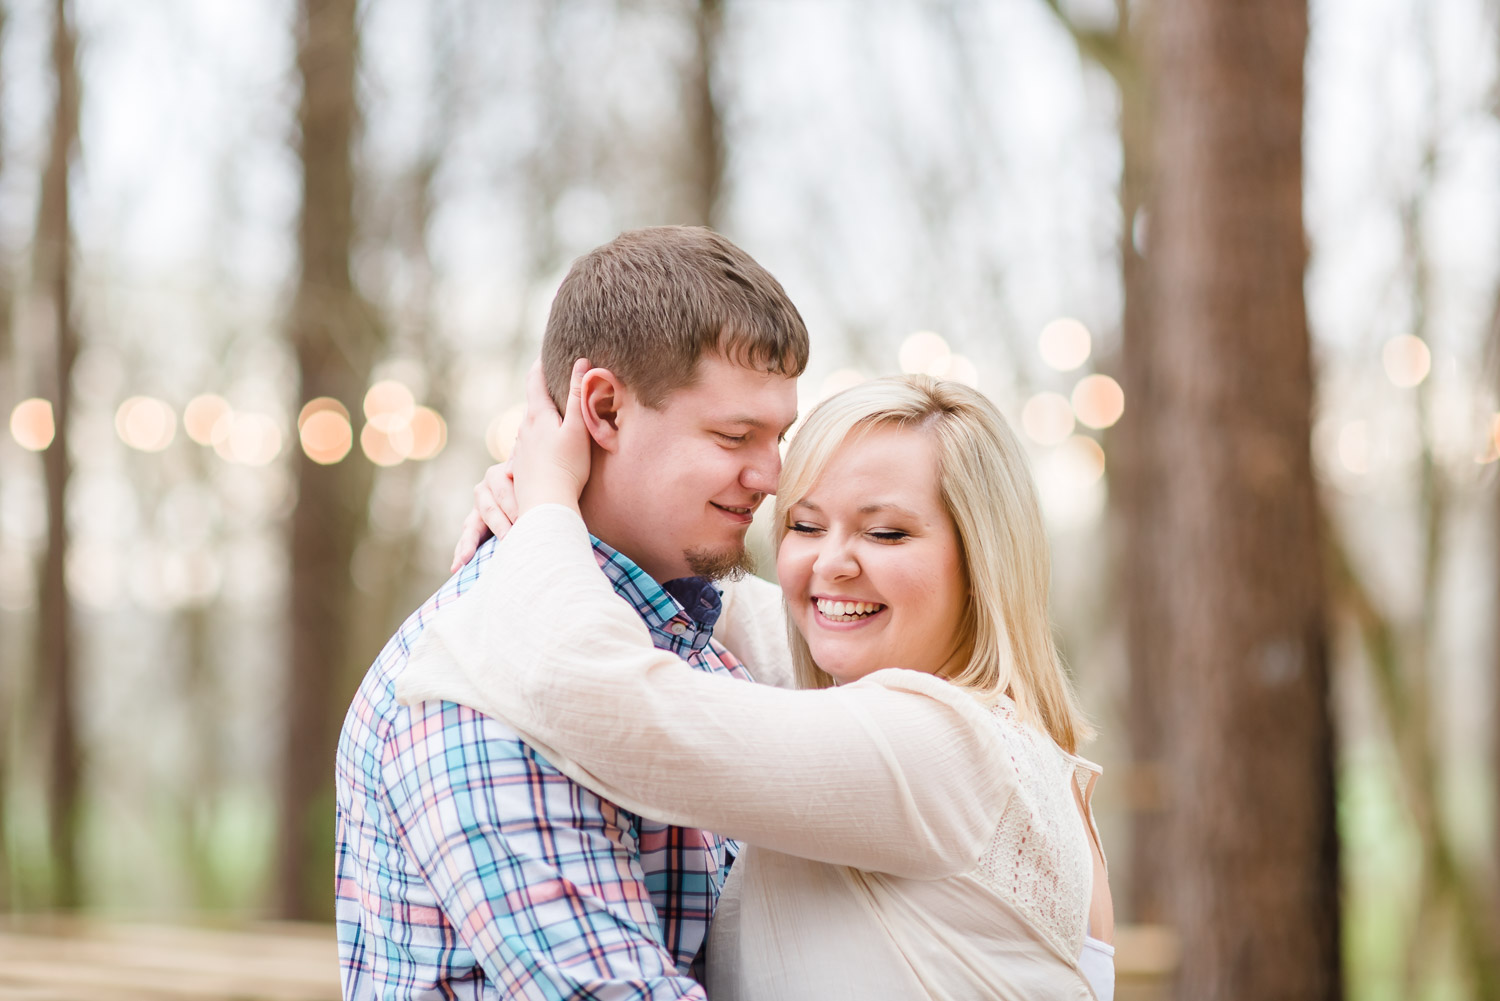 smiling couple in cream colored and plaid shirt